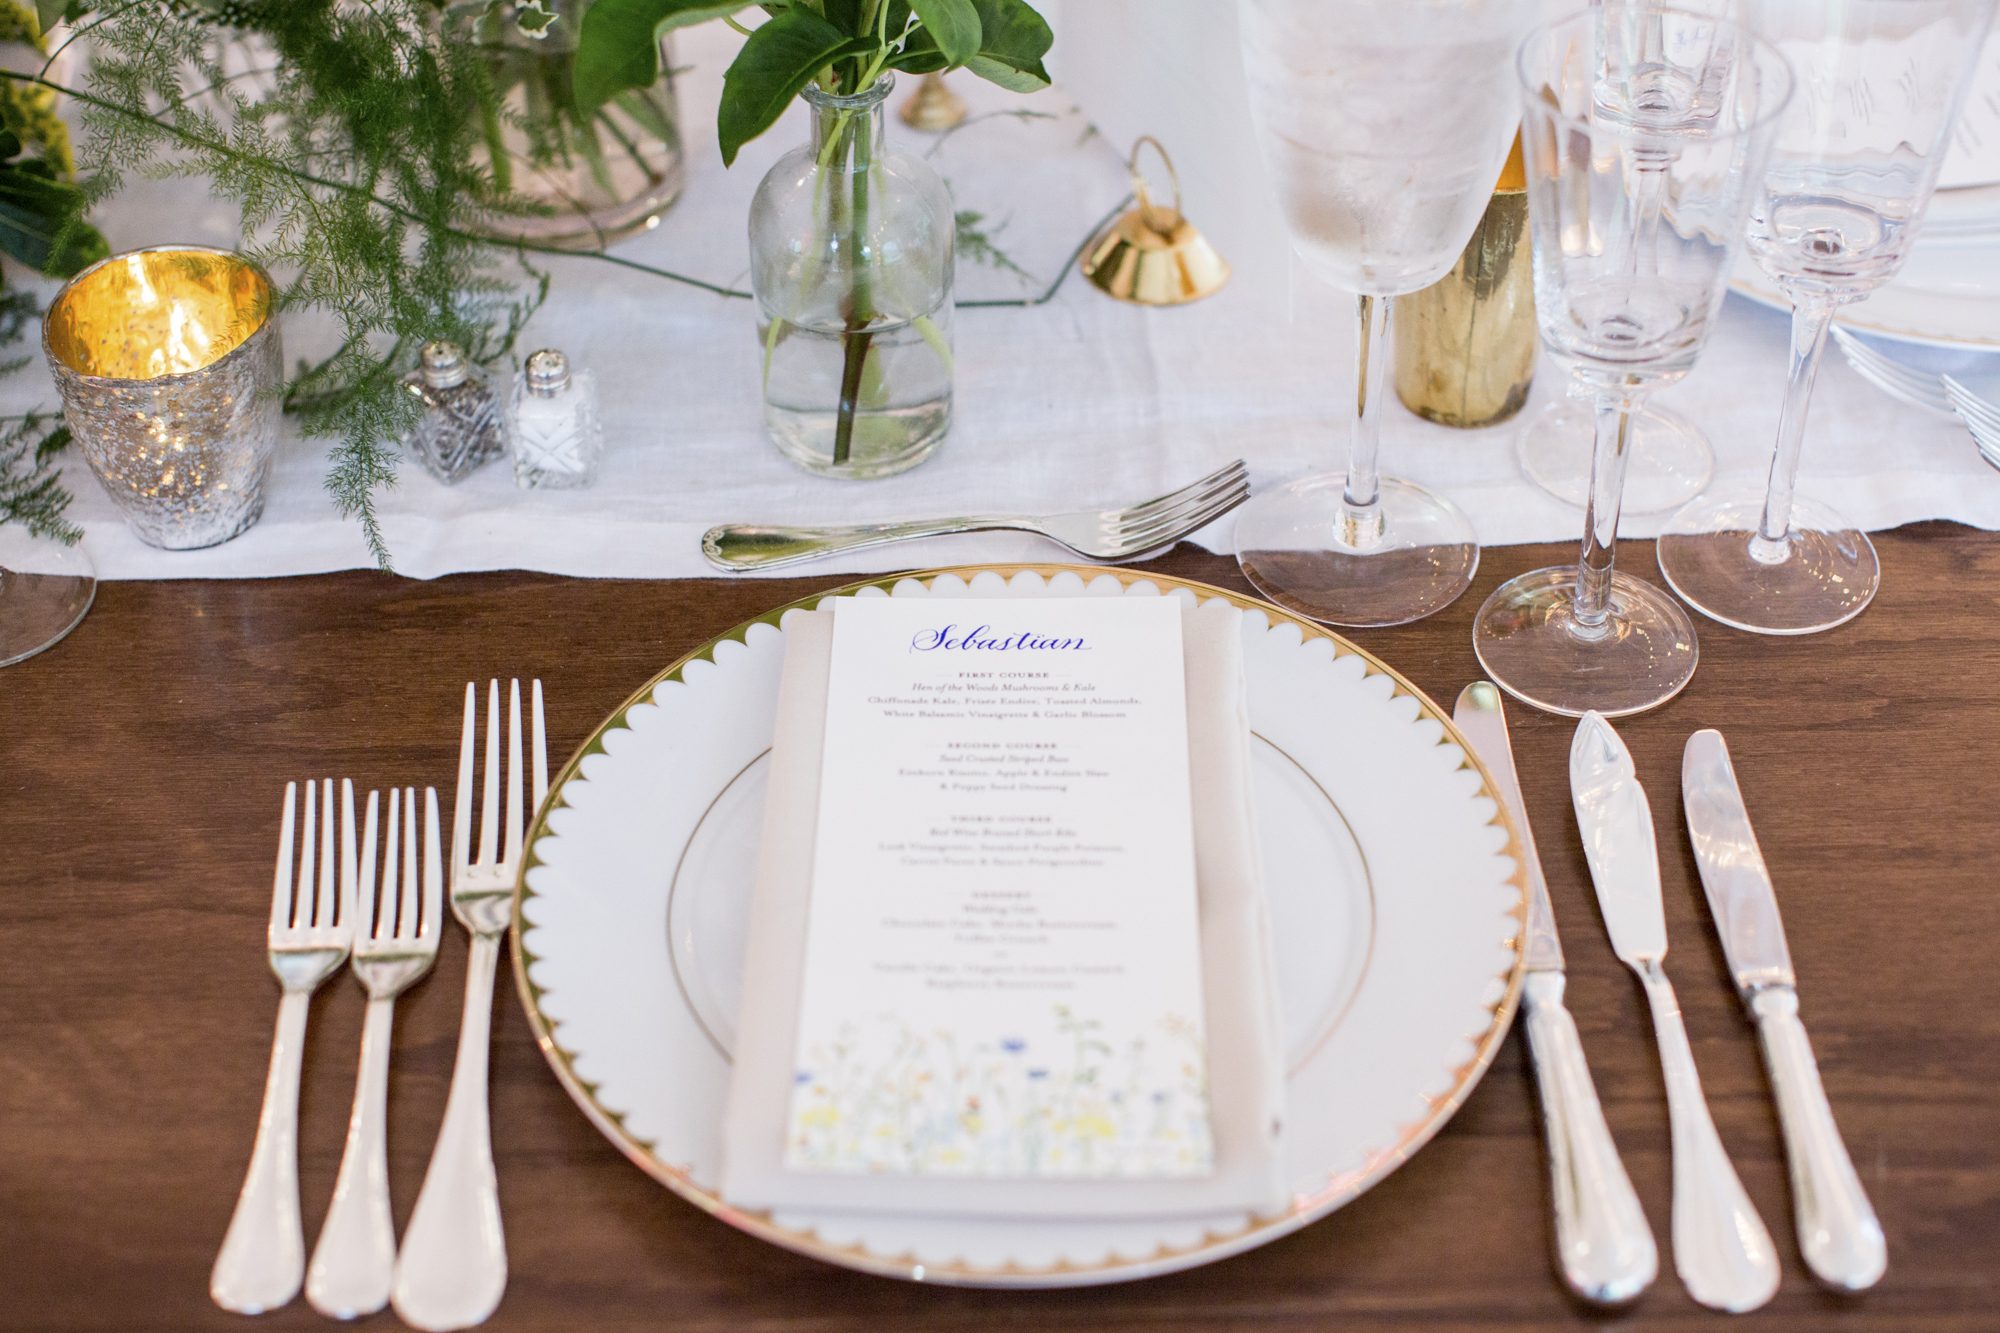 Menu card by Katie Fisher Design